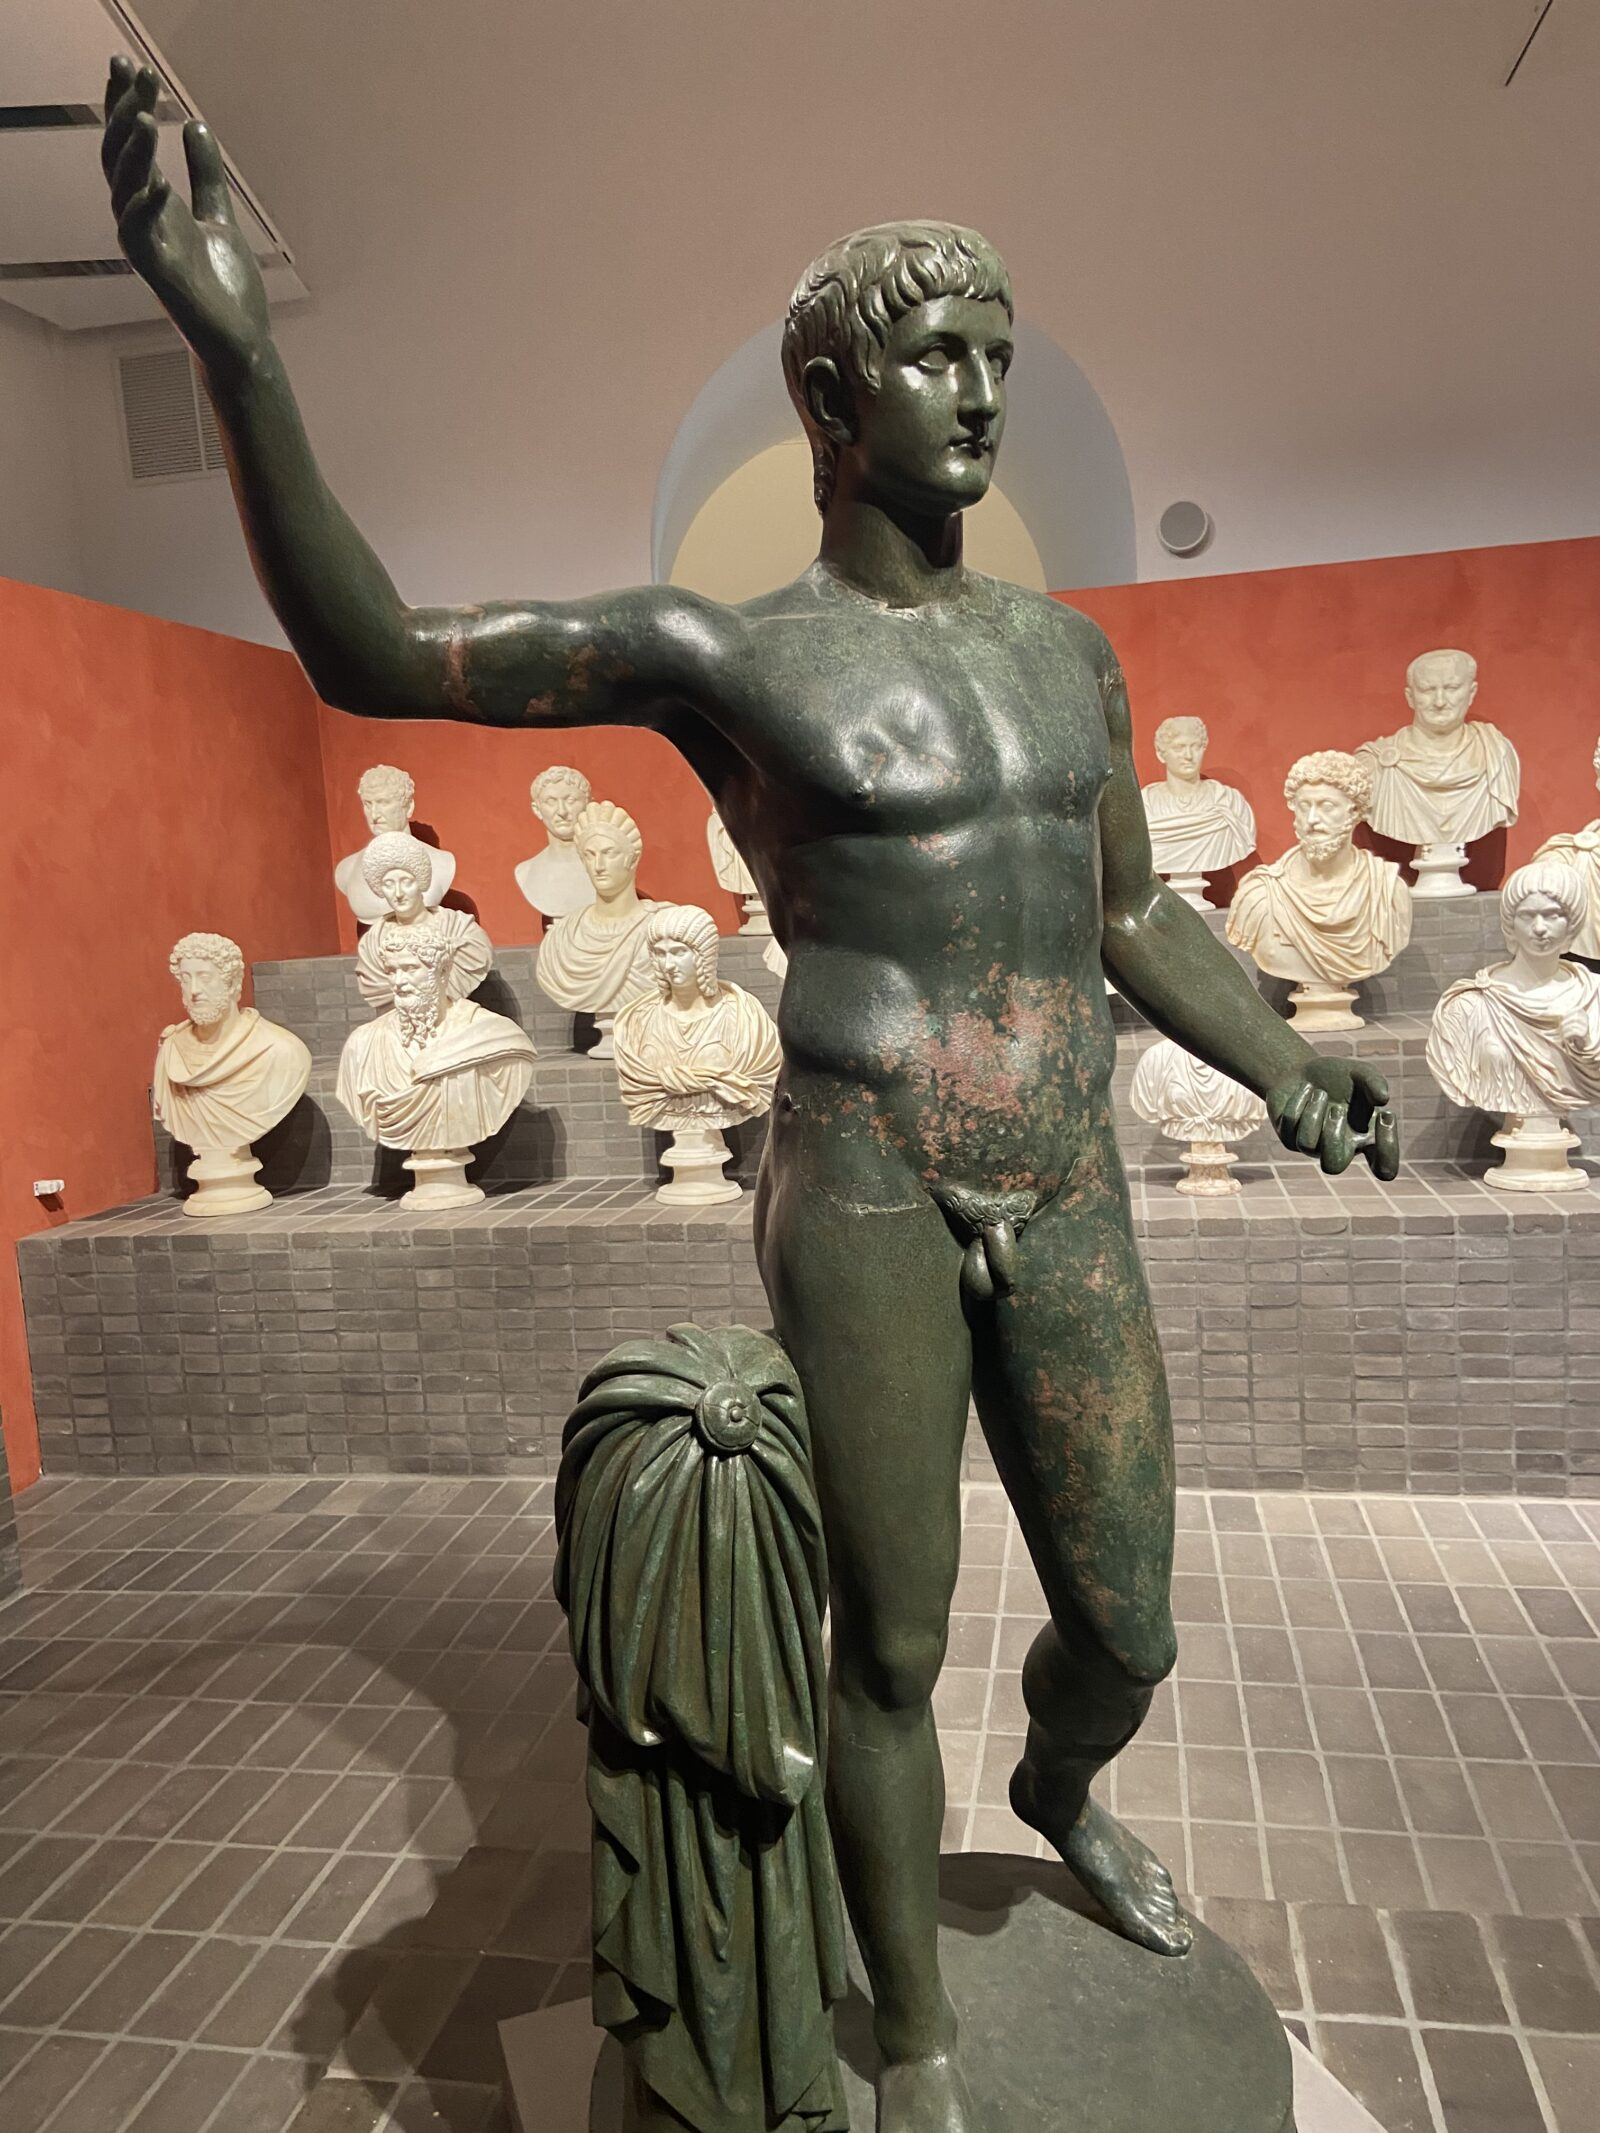 The statue of general Germanicus in the room of busts is one of the highlights of The Torlonia Marbles exhibit.